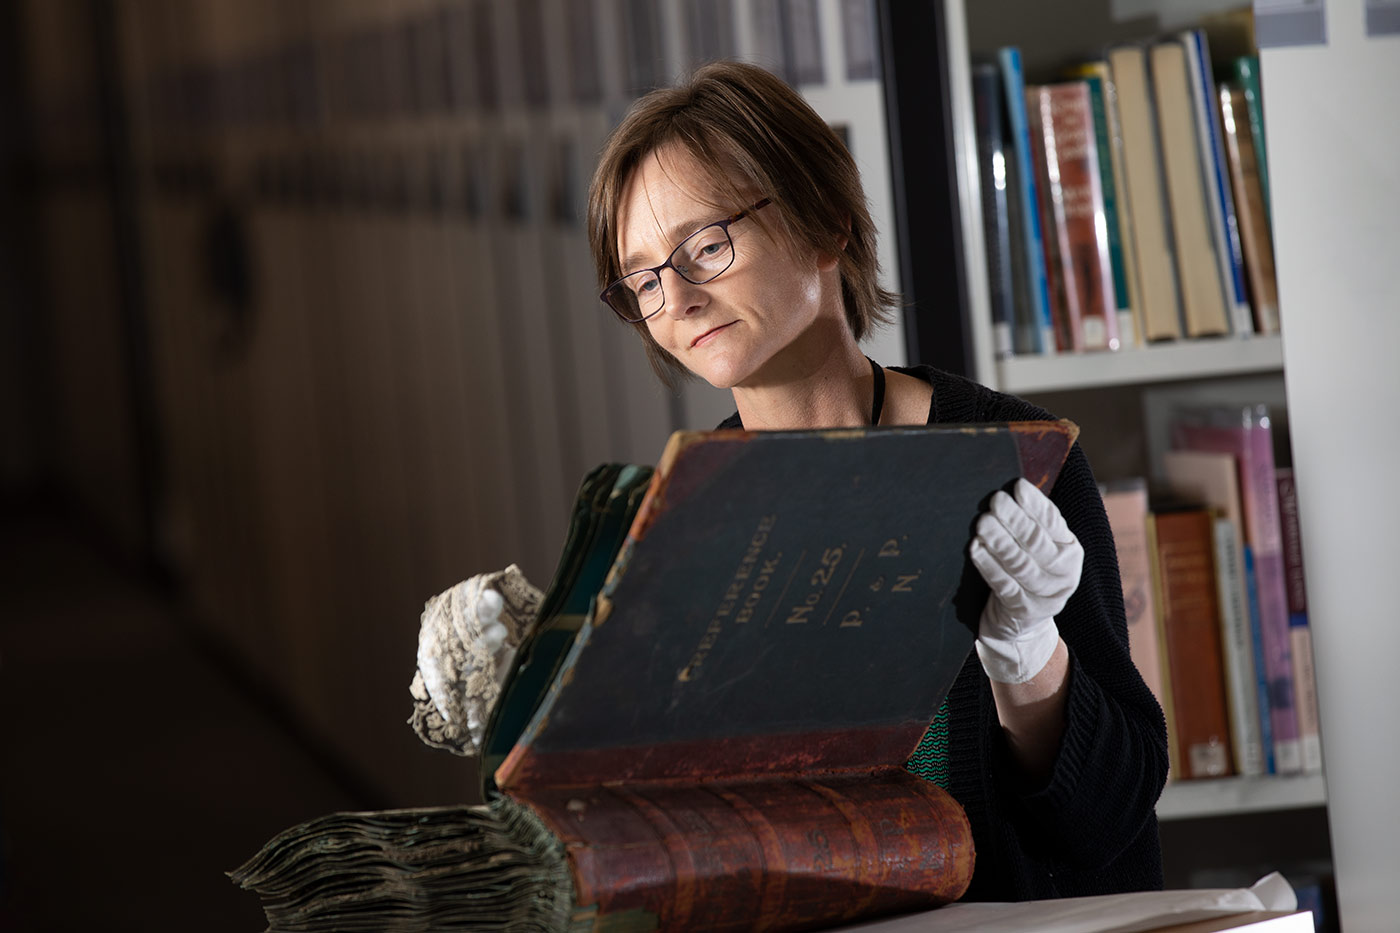 Colour photograph of a woman wearing conservation gloves and studying lace samples from a large leather-bound book. - click to view larger image